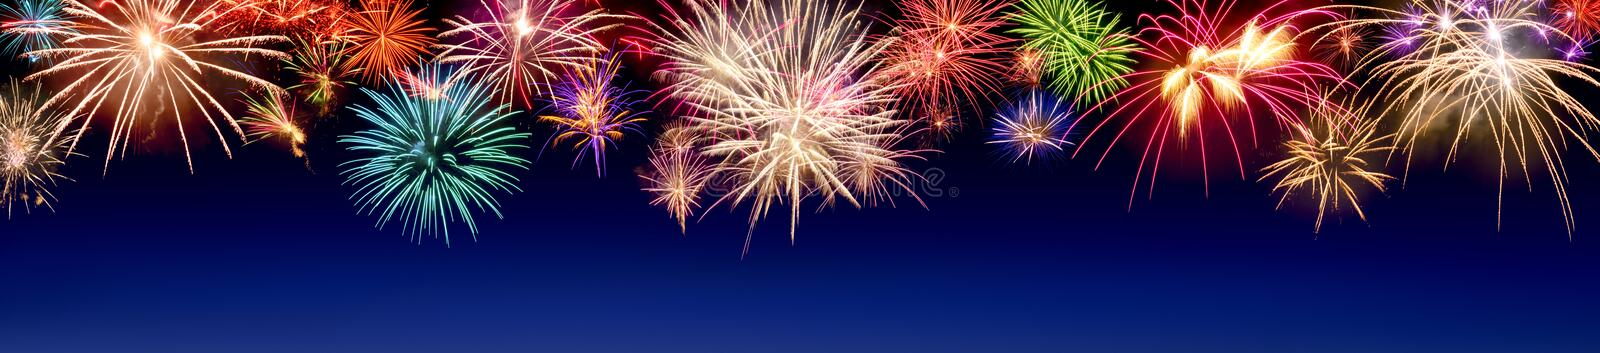 Colorful fireworks display on blue royalty free stock photography